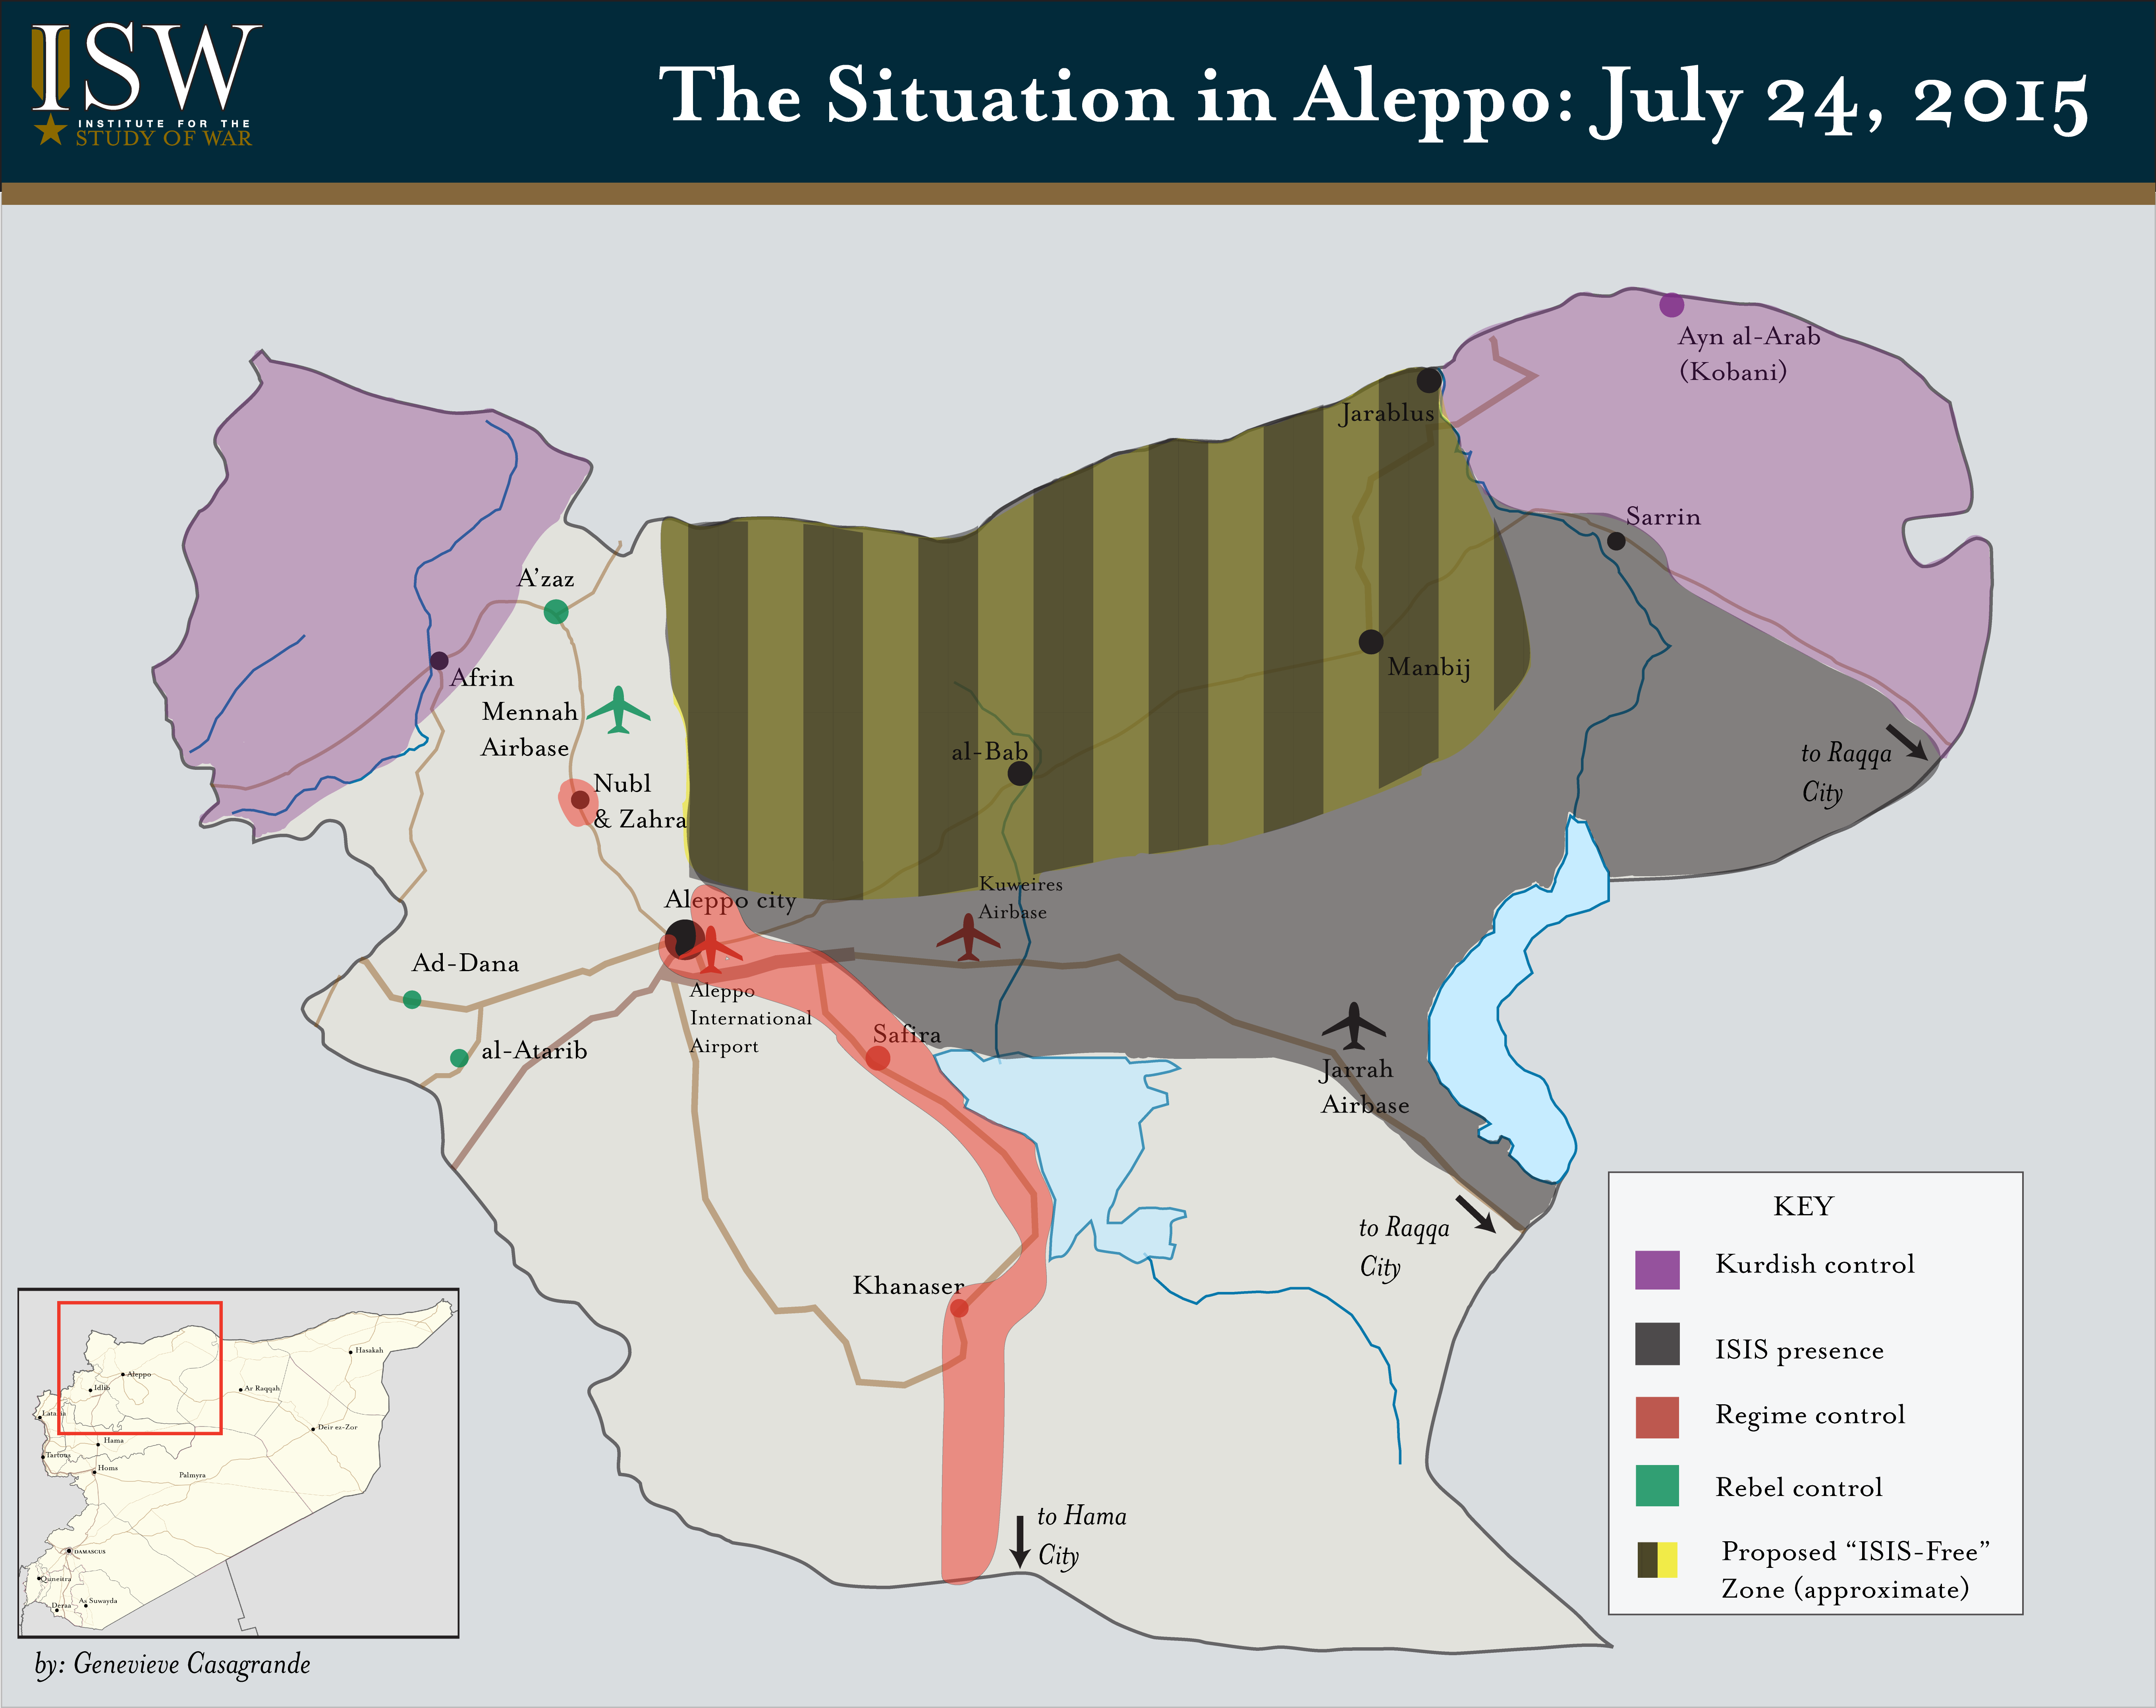 The striped section of the map is the proposed  no-ISIS zone.